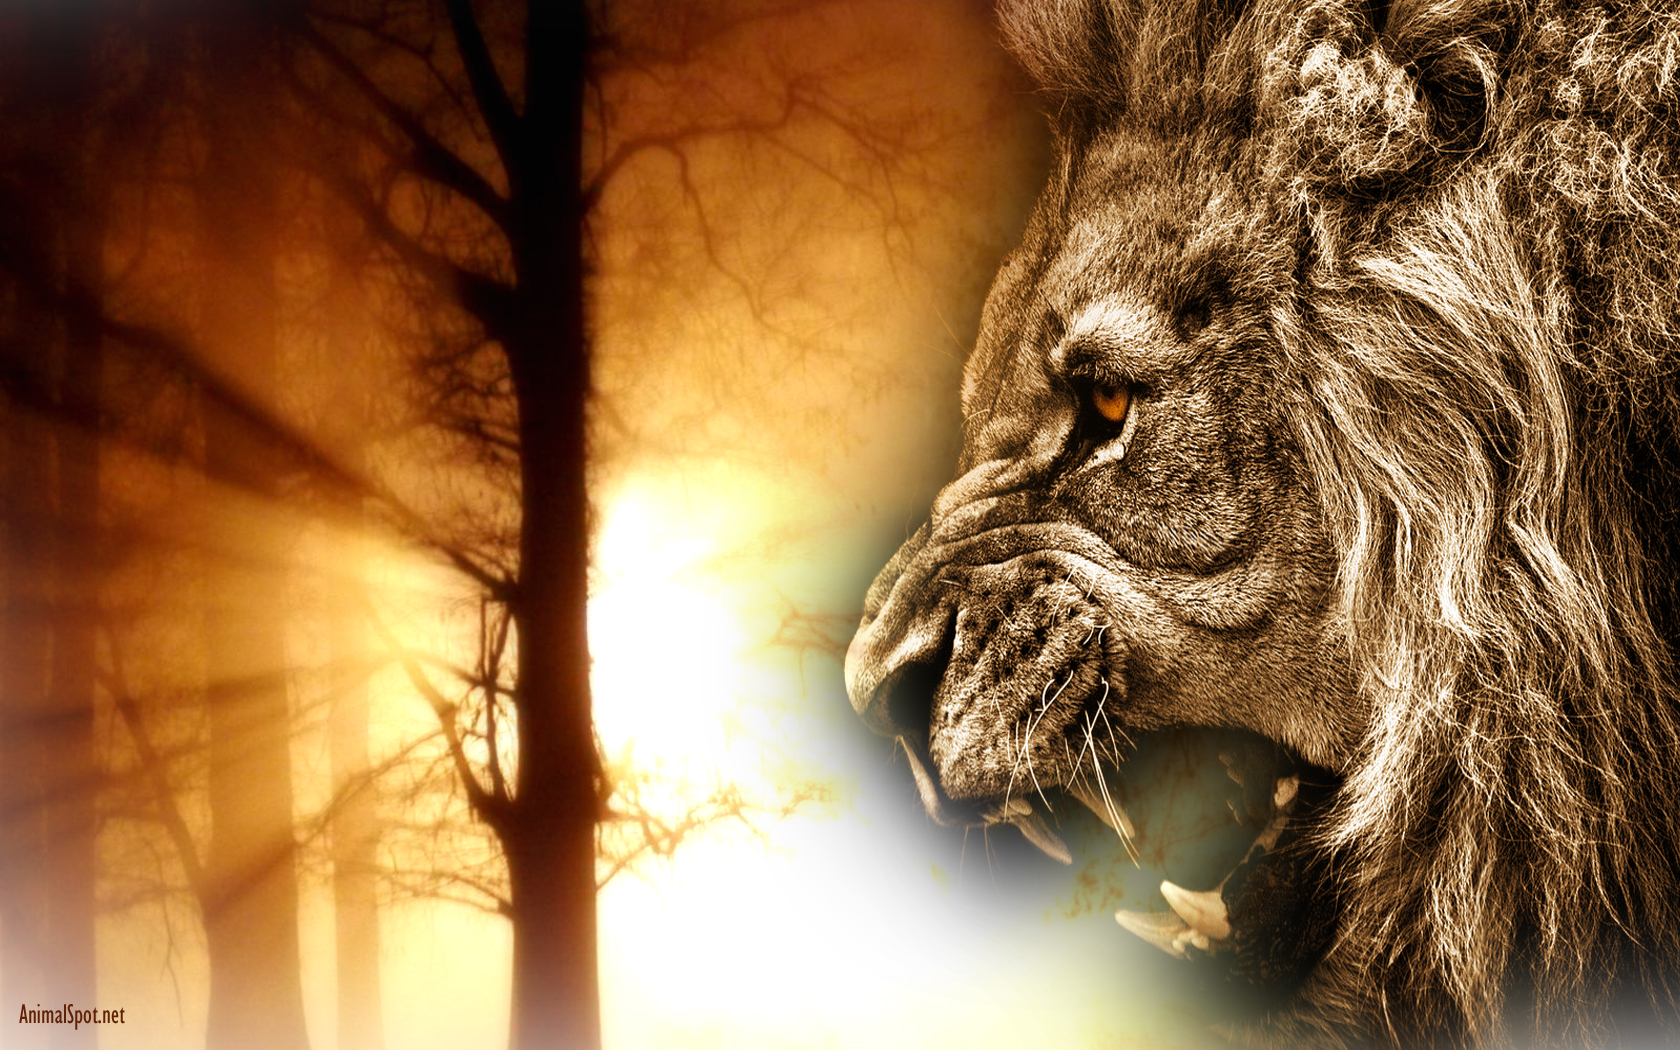 lion face wallpaper lion roar wallpaper lion wallpaper desktop lion 1680x1050